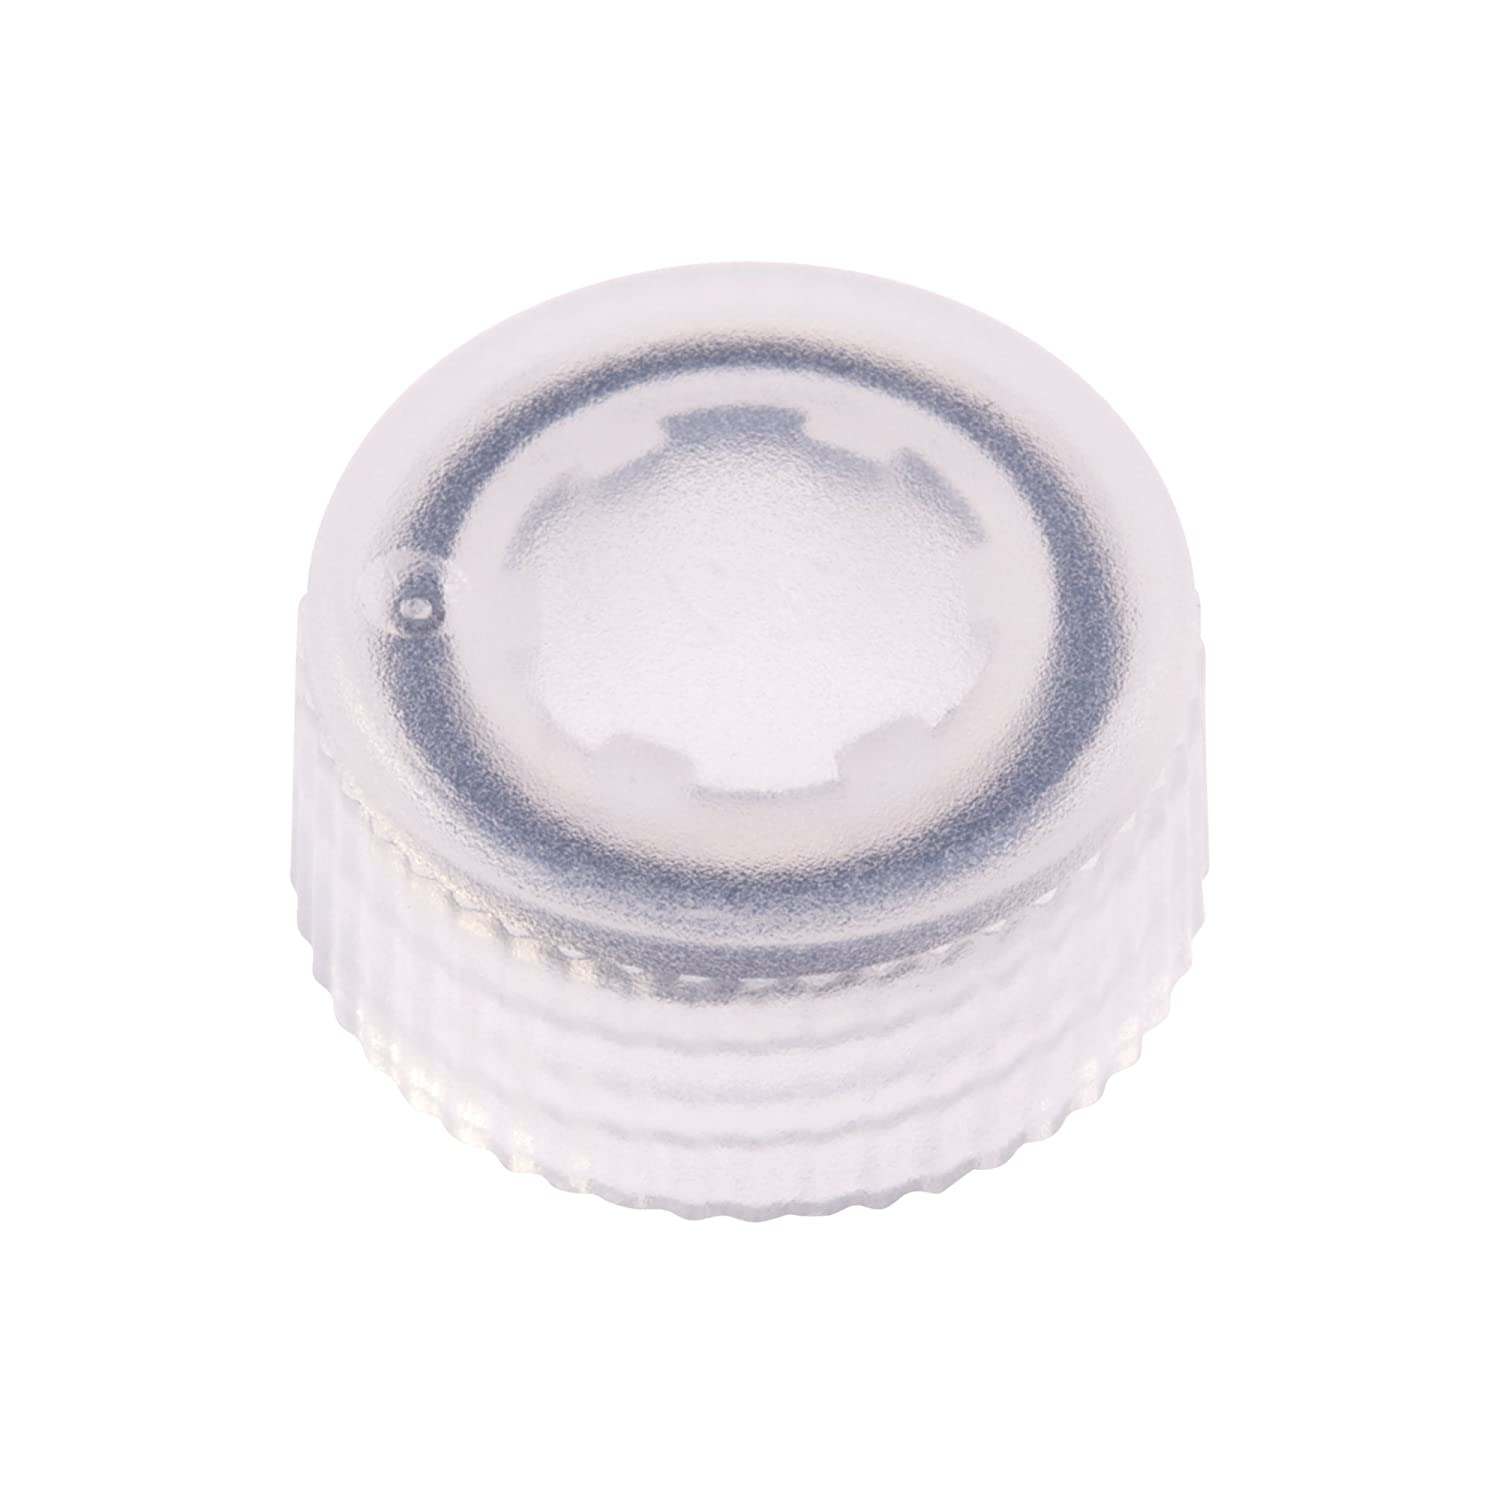 CELLTREAT 230842C Cap Only Screw Tube Top Tr Micro Over item handling Popular product O-Ring